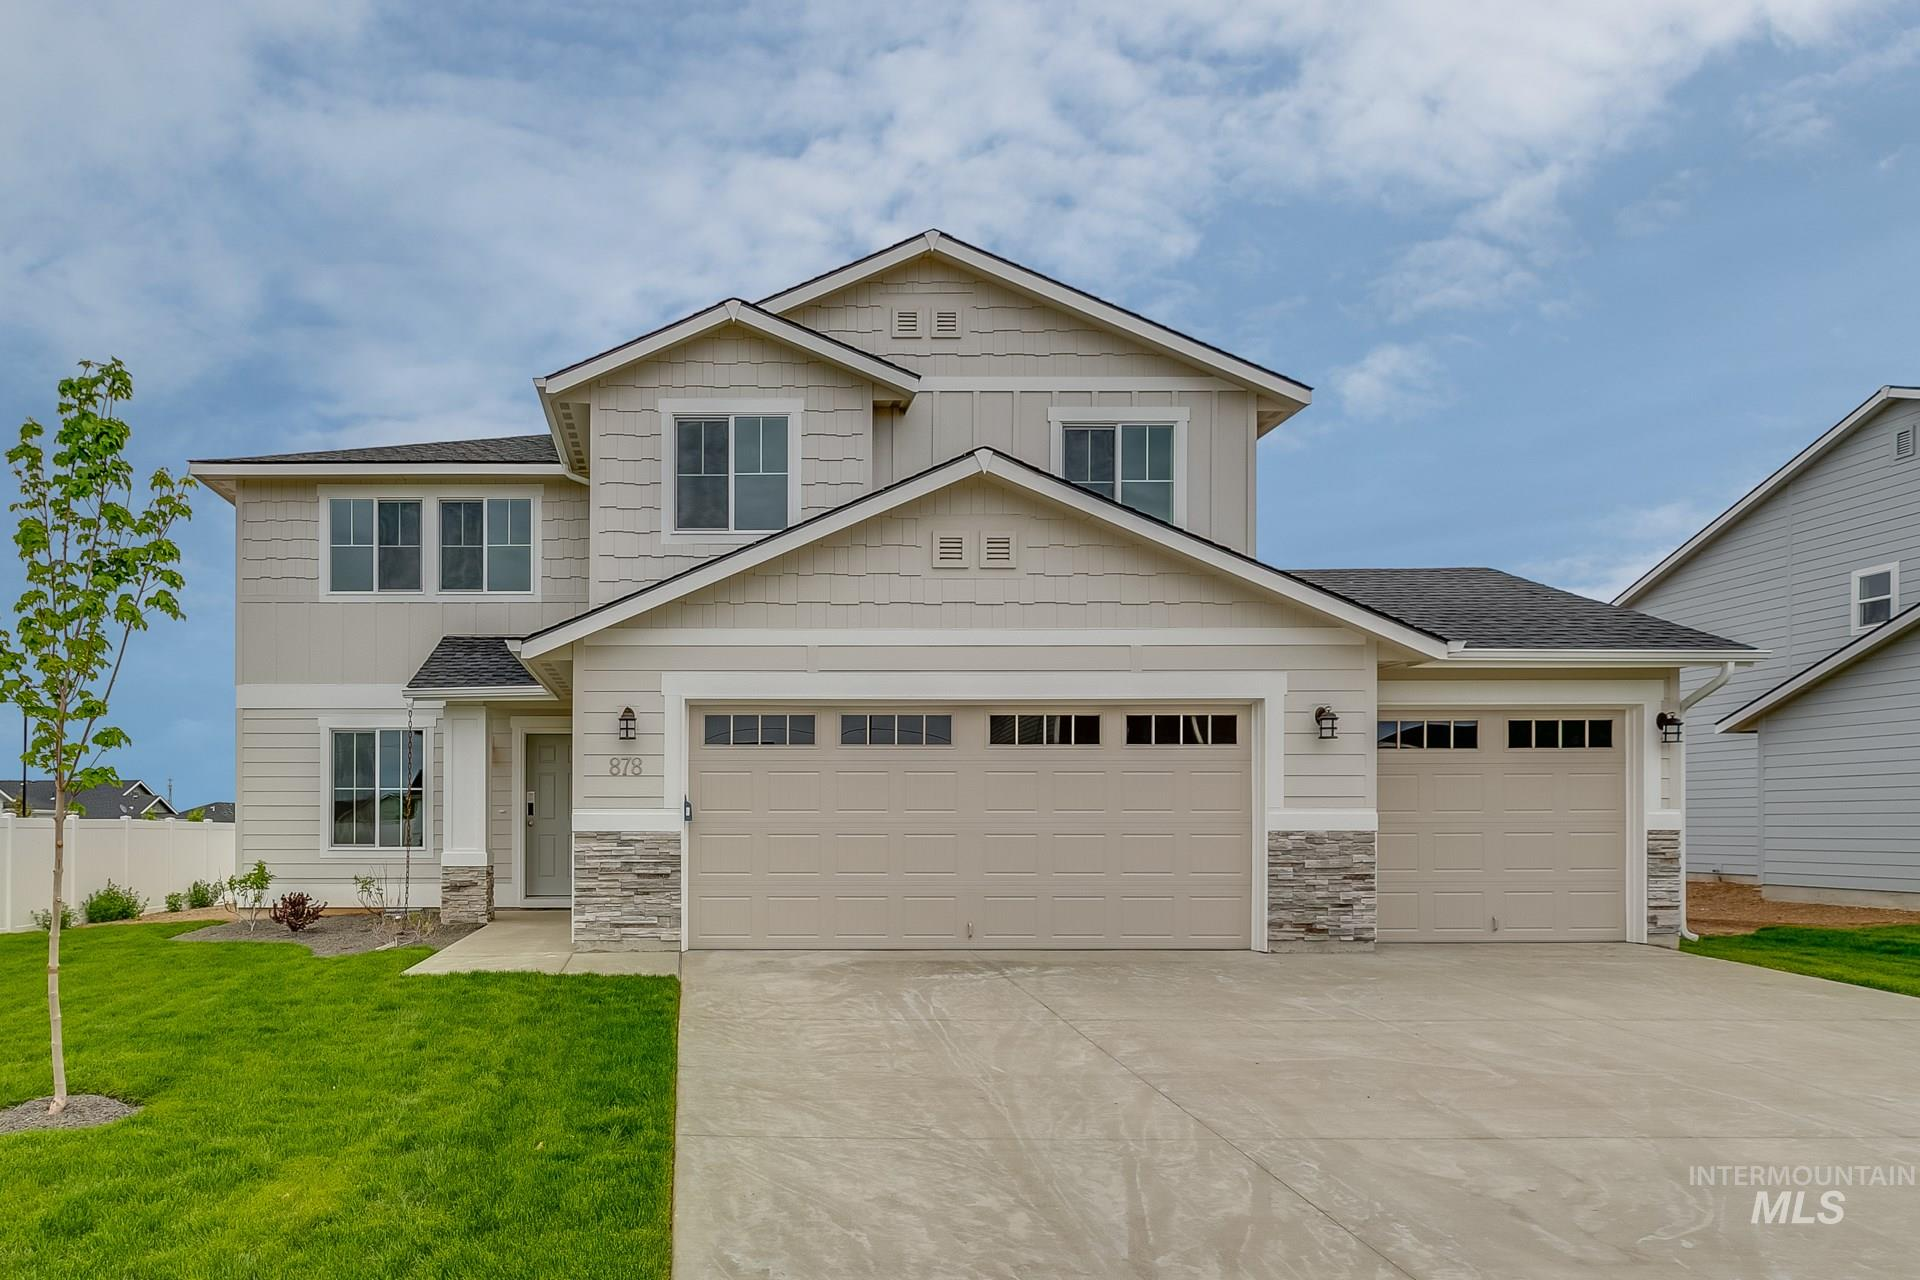 6175 N Colosseum Ave Property Photo - Meridian, ID real estate listing